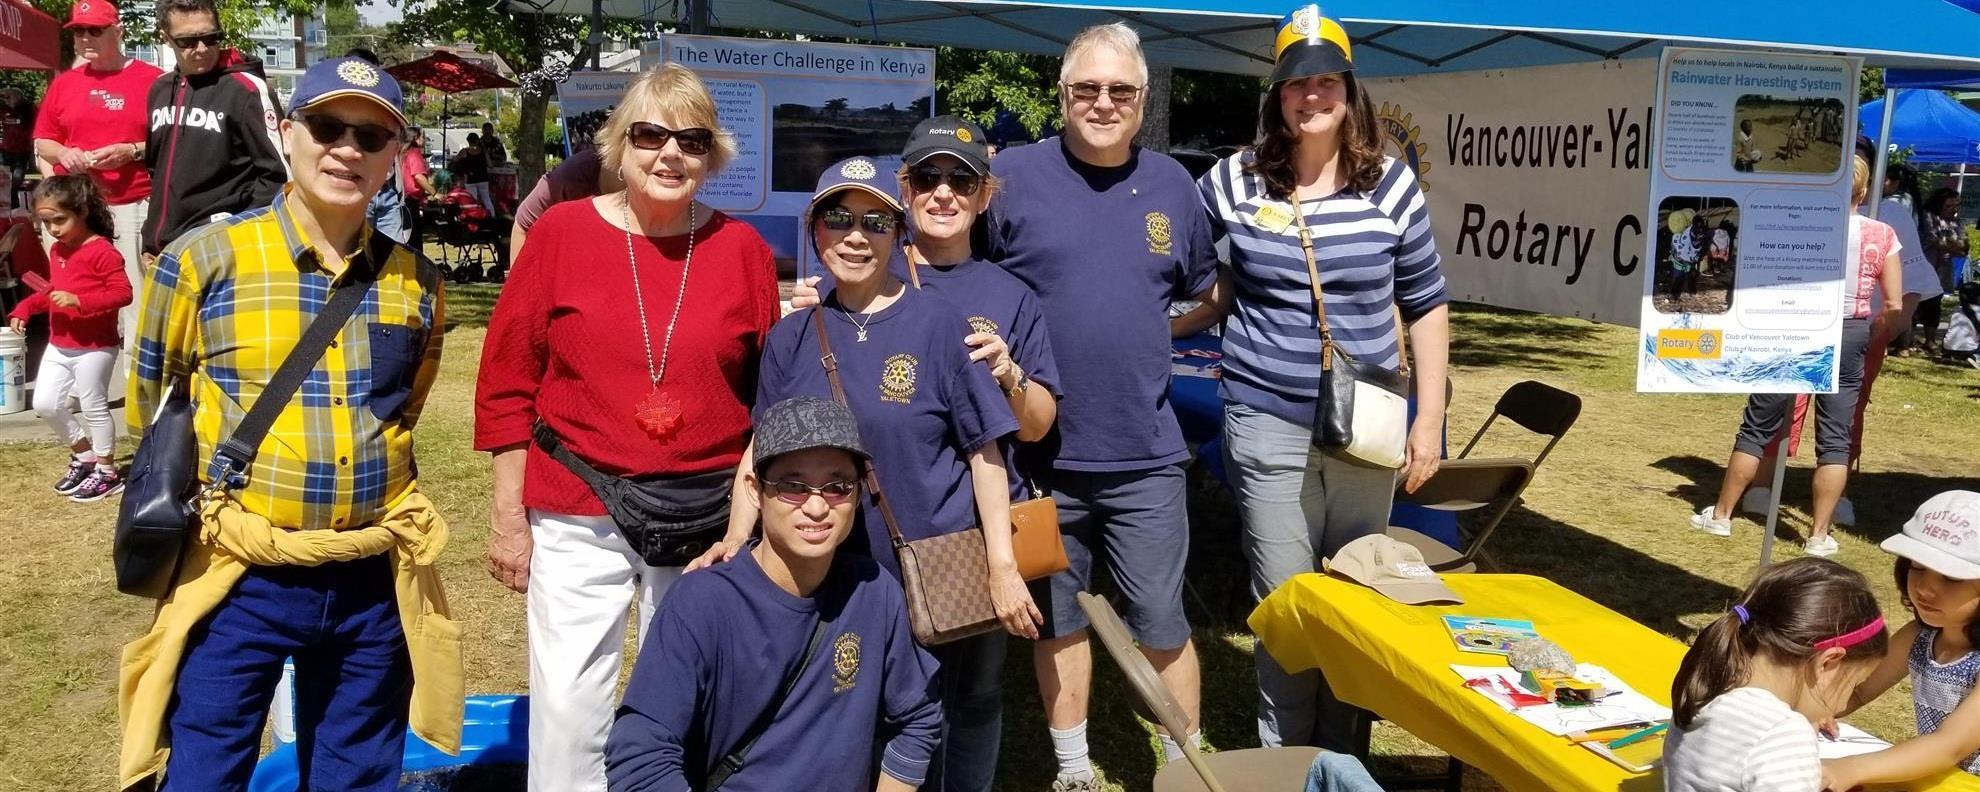 Rotary Booth at Canada Day